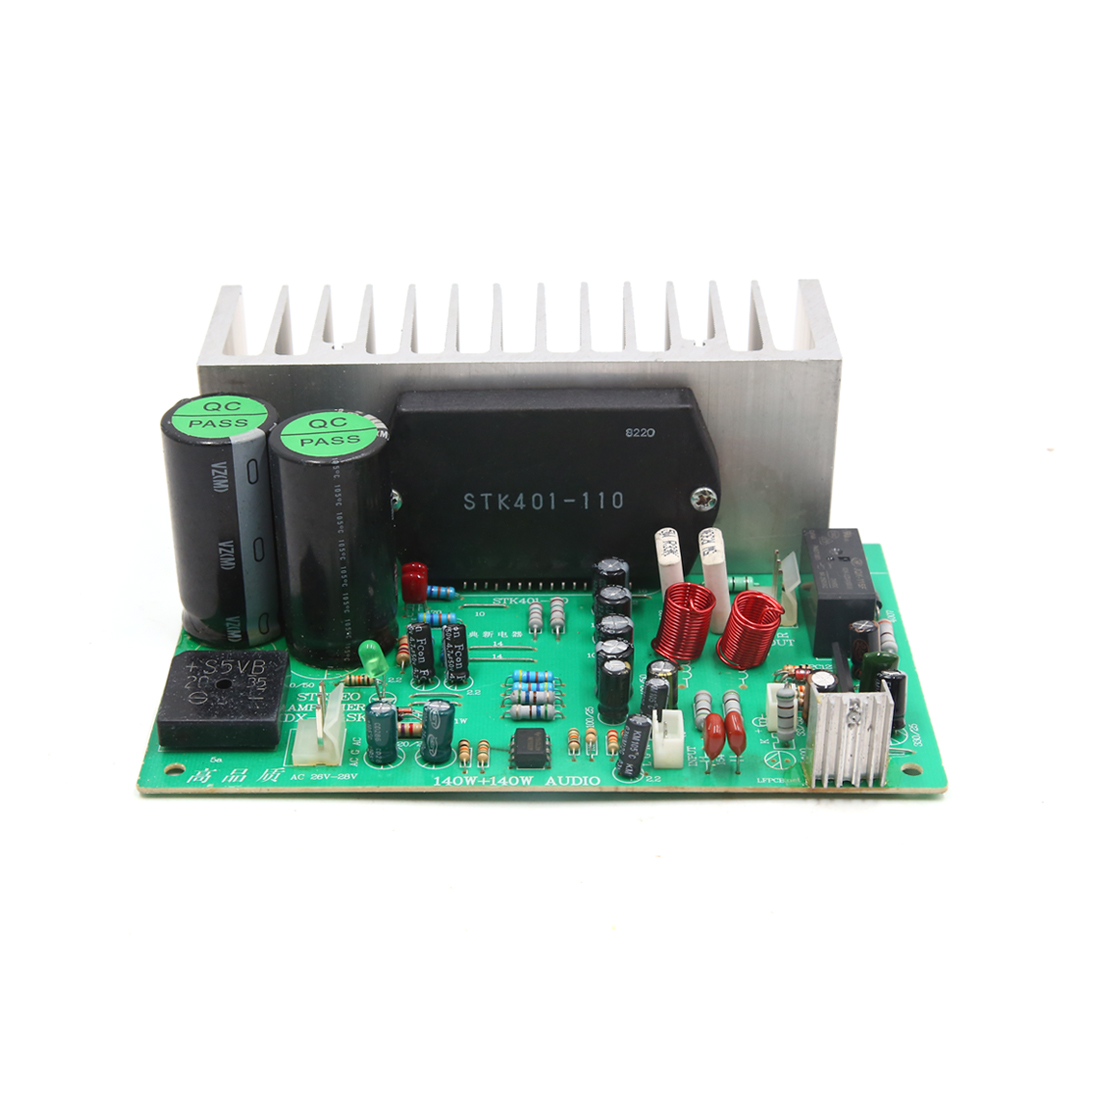 DC 24V-32V 140W 6Ohm Hi-Fi Audio Stereo Power Amplifier Board for Motorcycle Car